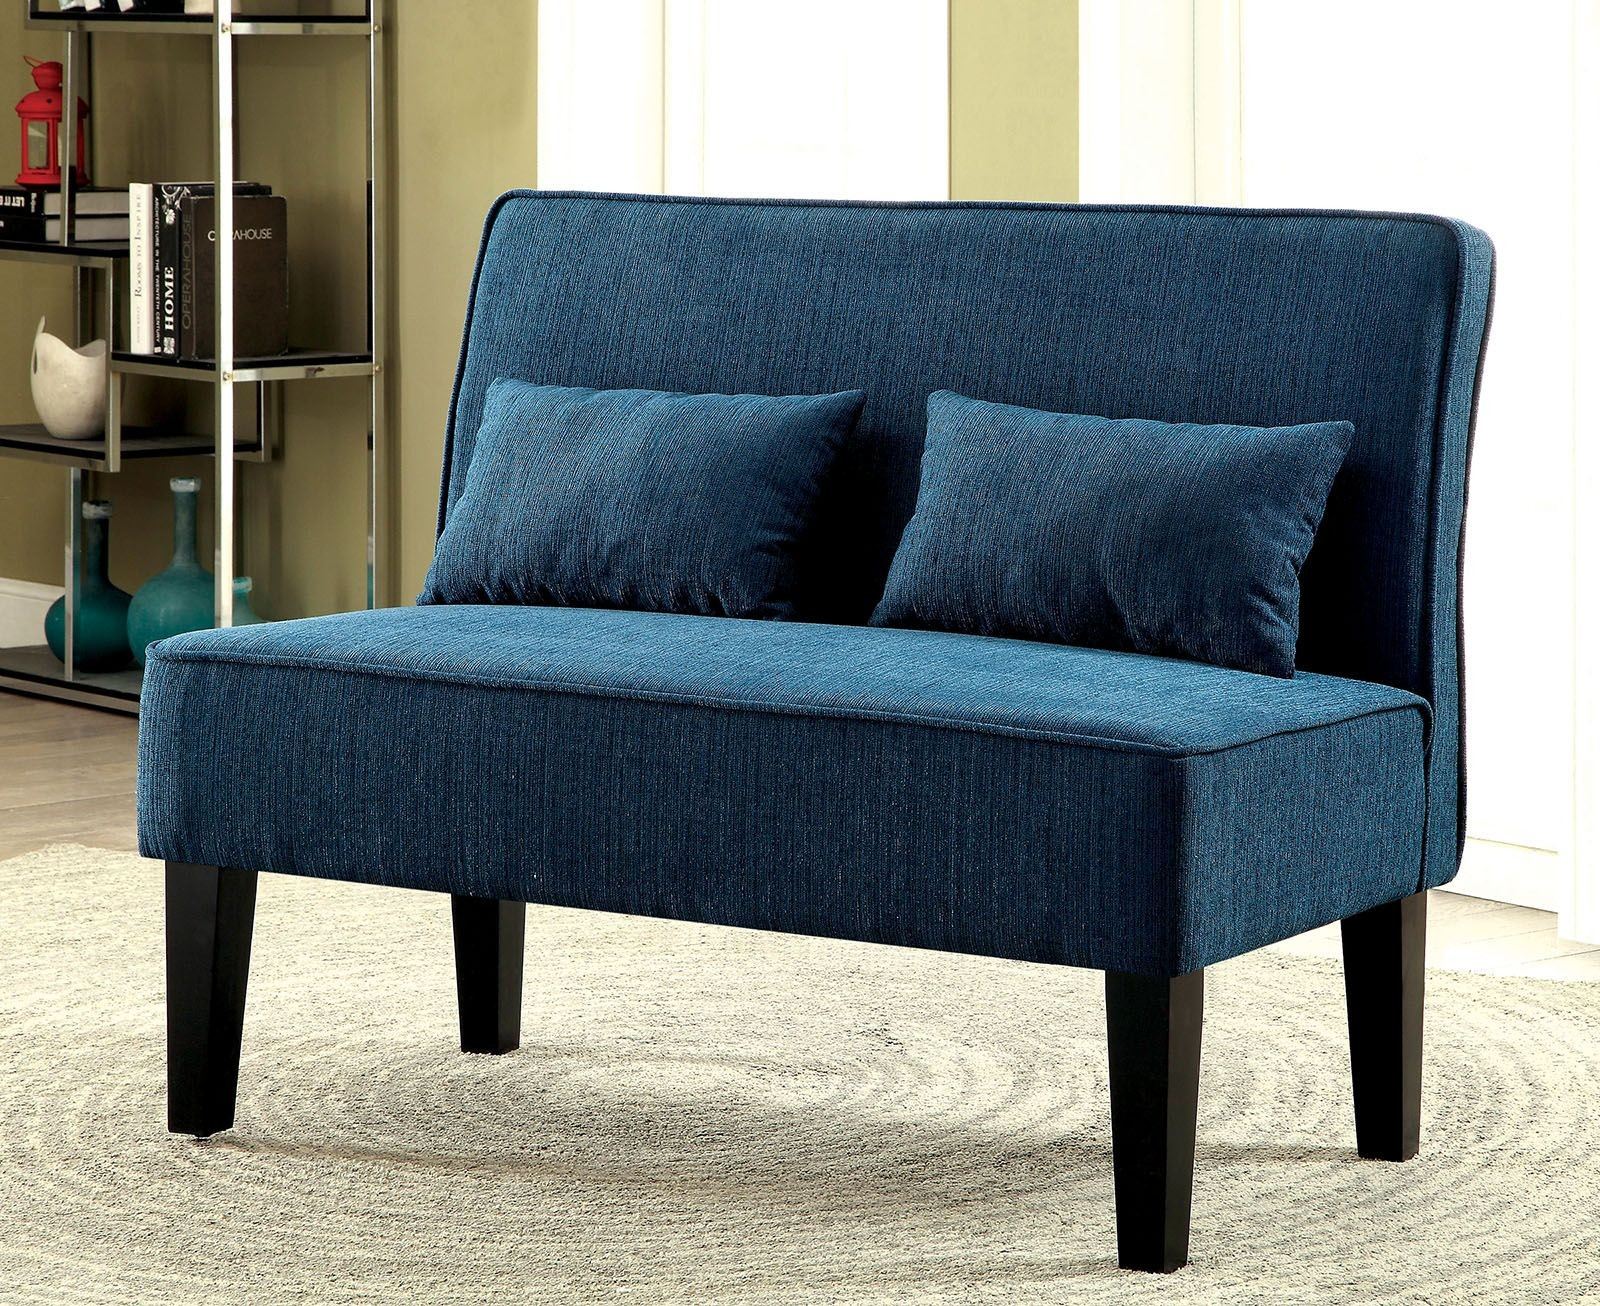 Lexi Teal Loveseat Bench From Furniture Of America